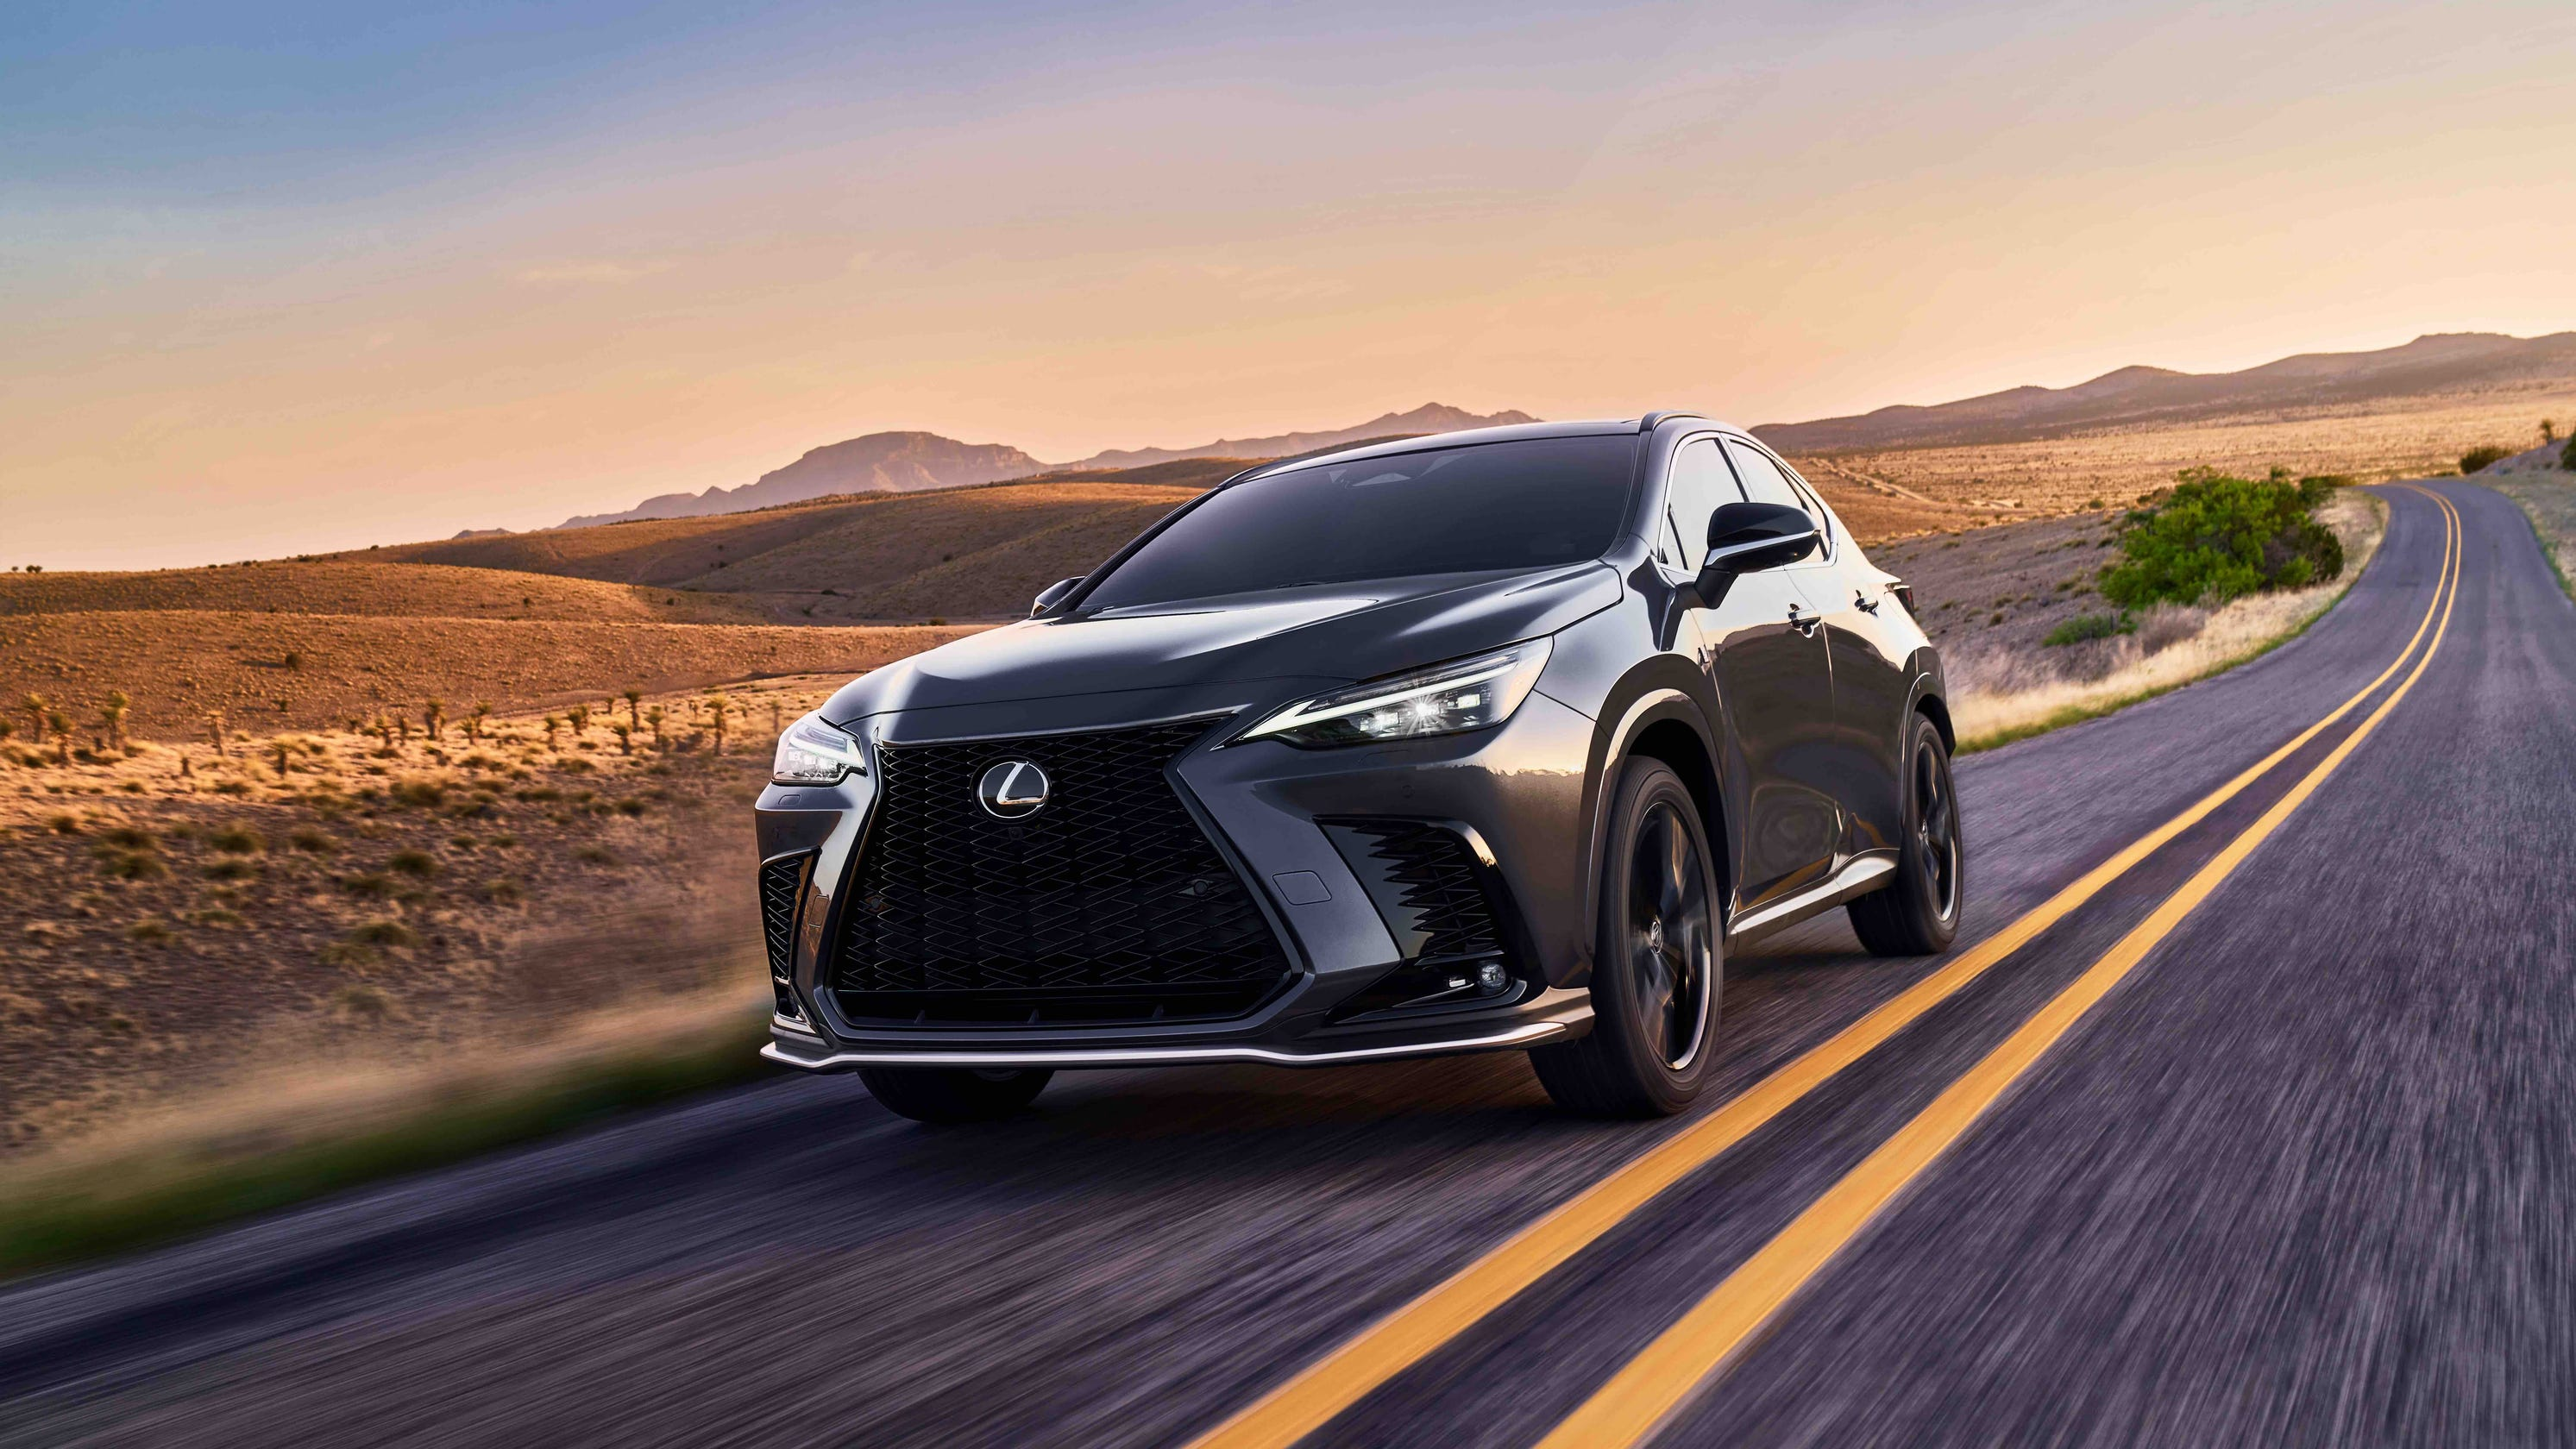 2022 Lexus NX compact SUV debuts new infotainment system, uses cloud-based navigation